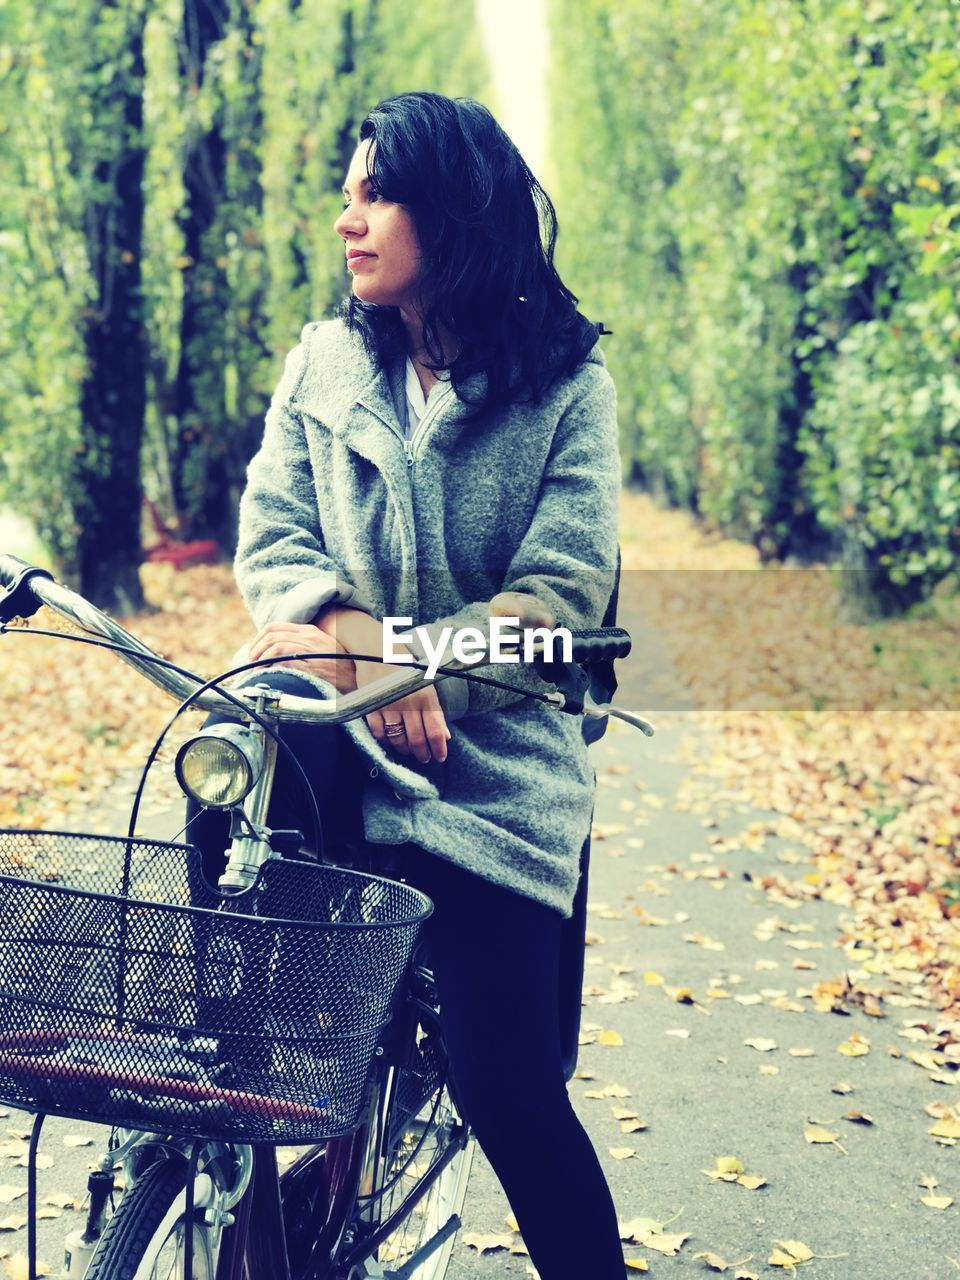 bicycle, real people, tree, one person, transportation, nature, young adult, plant, day, lifestyles, leisure activity, focus on foreground, casual clothing, land, young women, autumn, women, three quarter length, outdoors, hairstyle